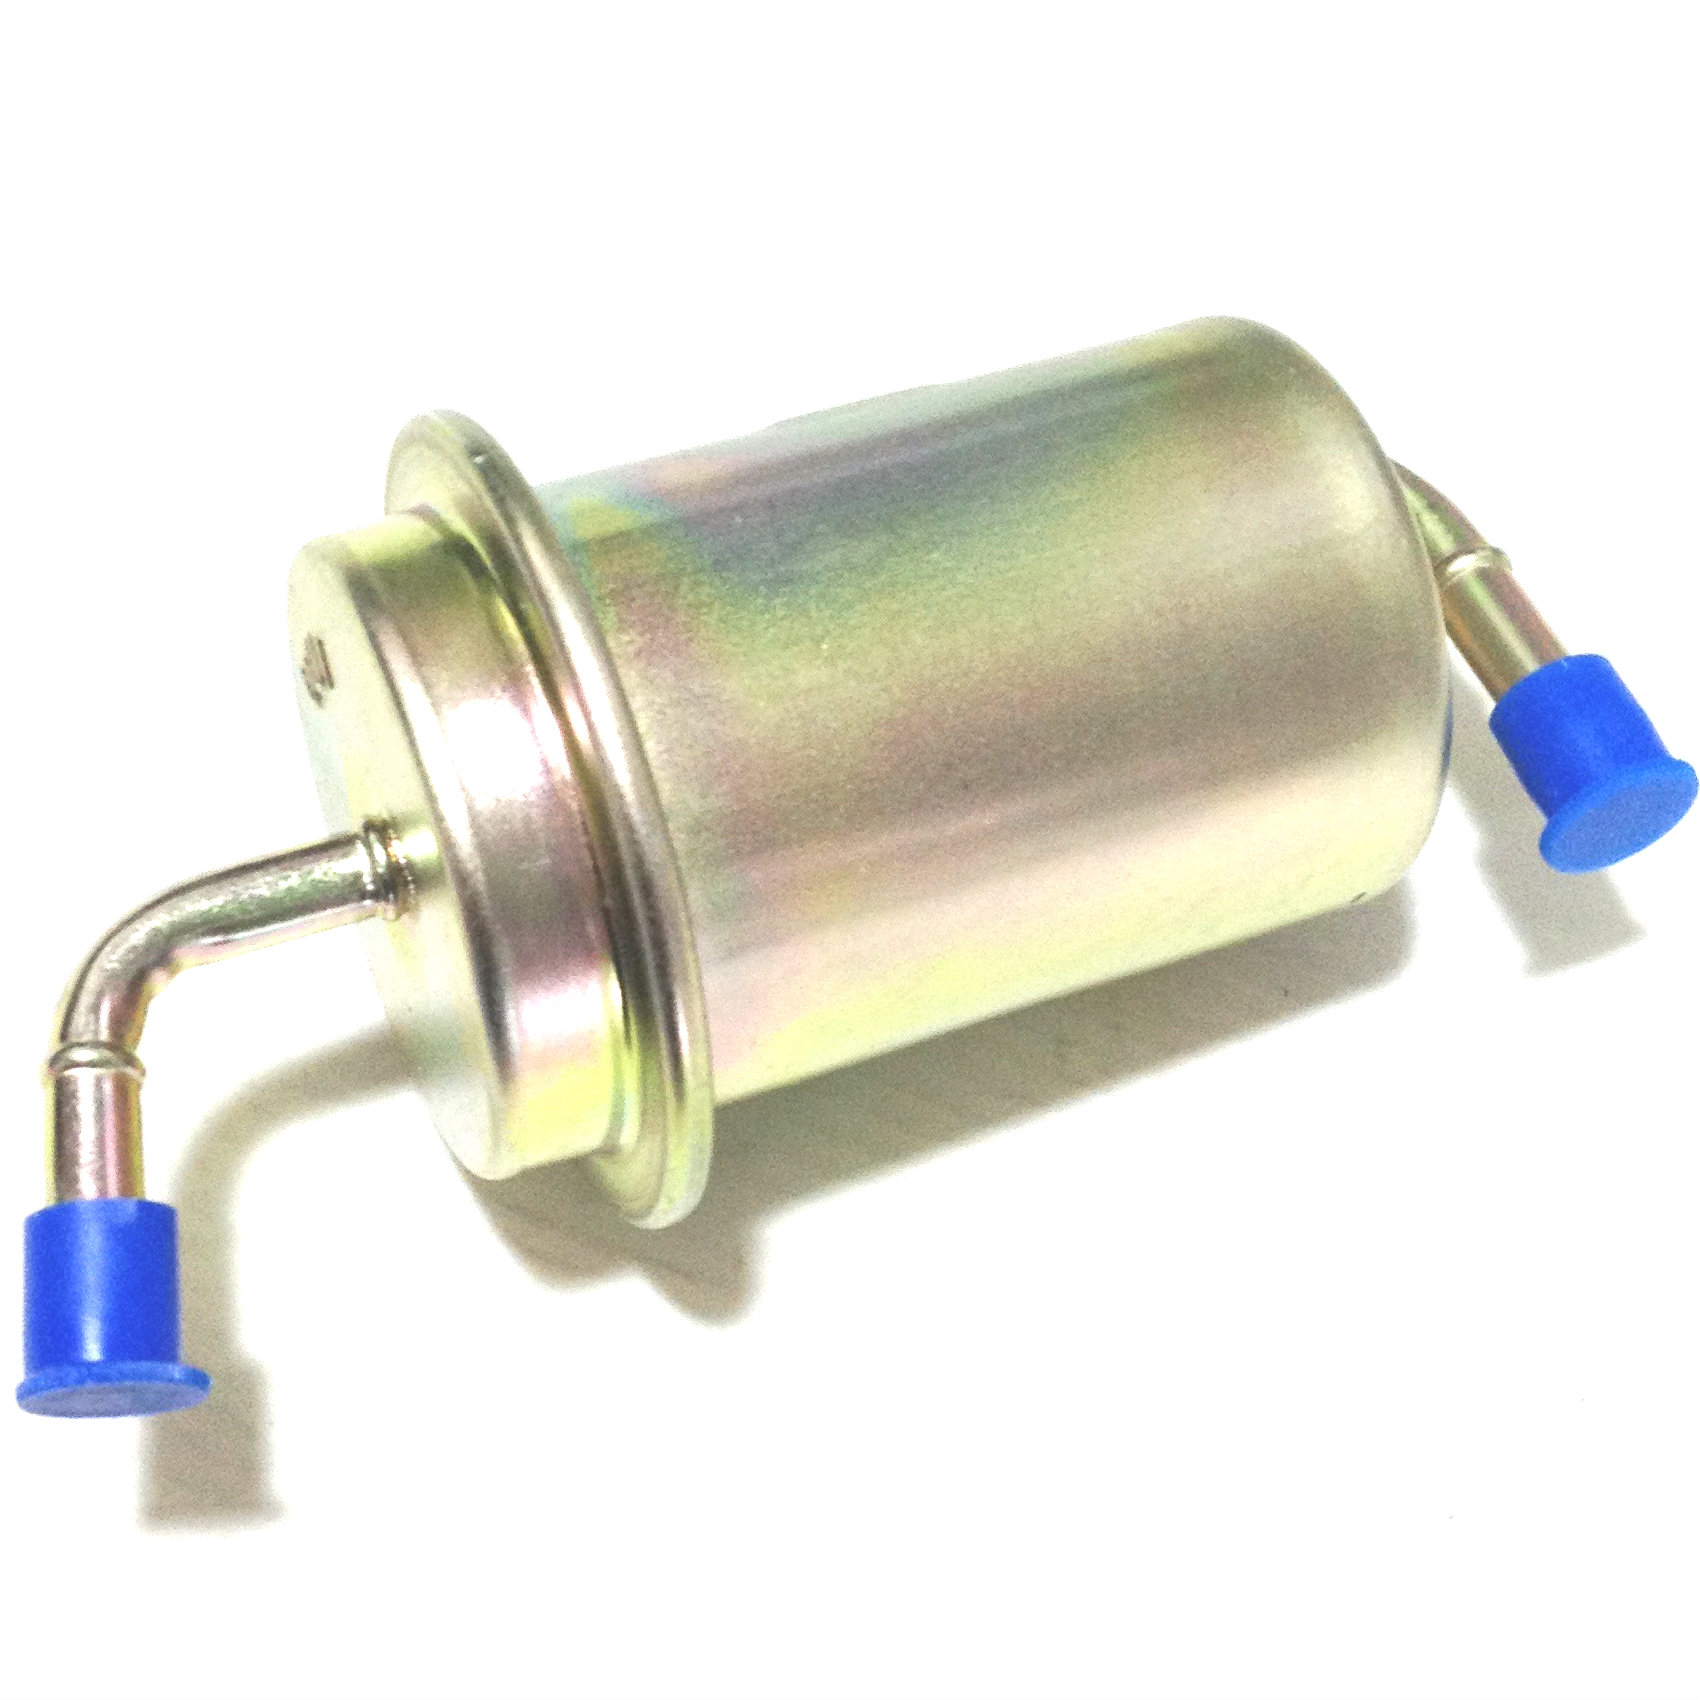 Ff405 Fuel Filter Sorell Service Station Exhaust